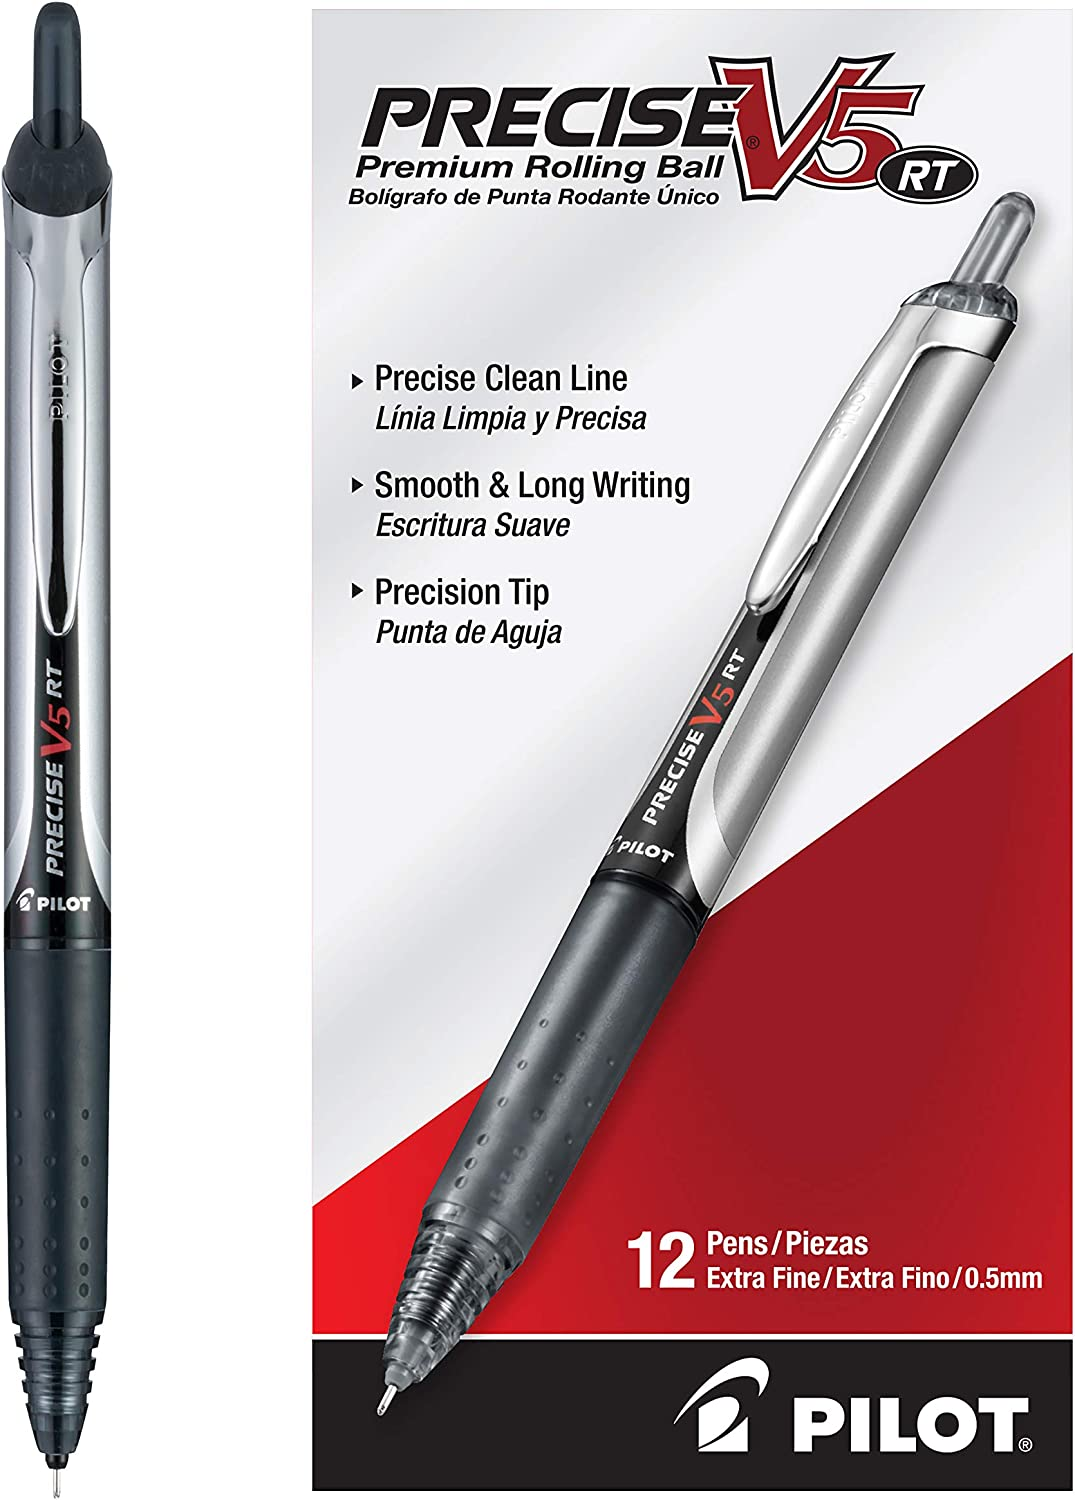 PILOT Precise V5 RT Refillable & Retractable Liquid Ink Rolling Ball Pens, Extra Fine Point, Black Ink, 12 Count (26062)